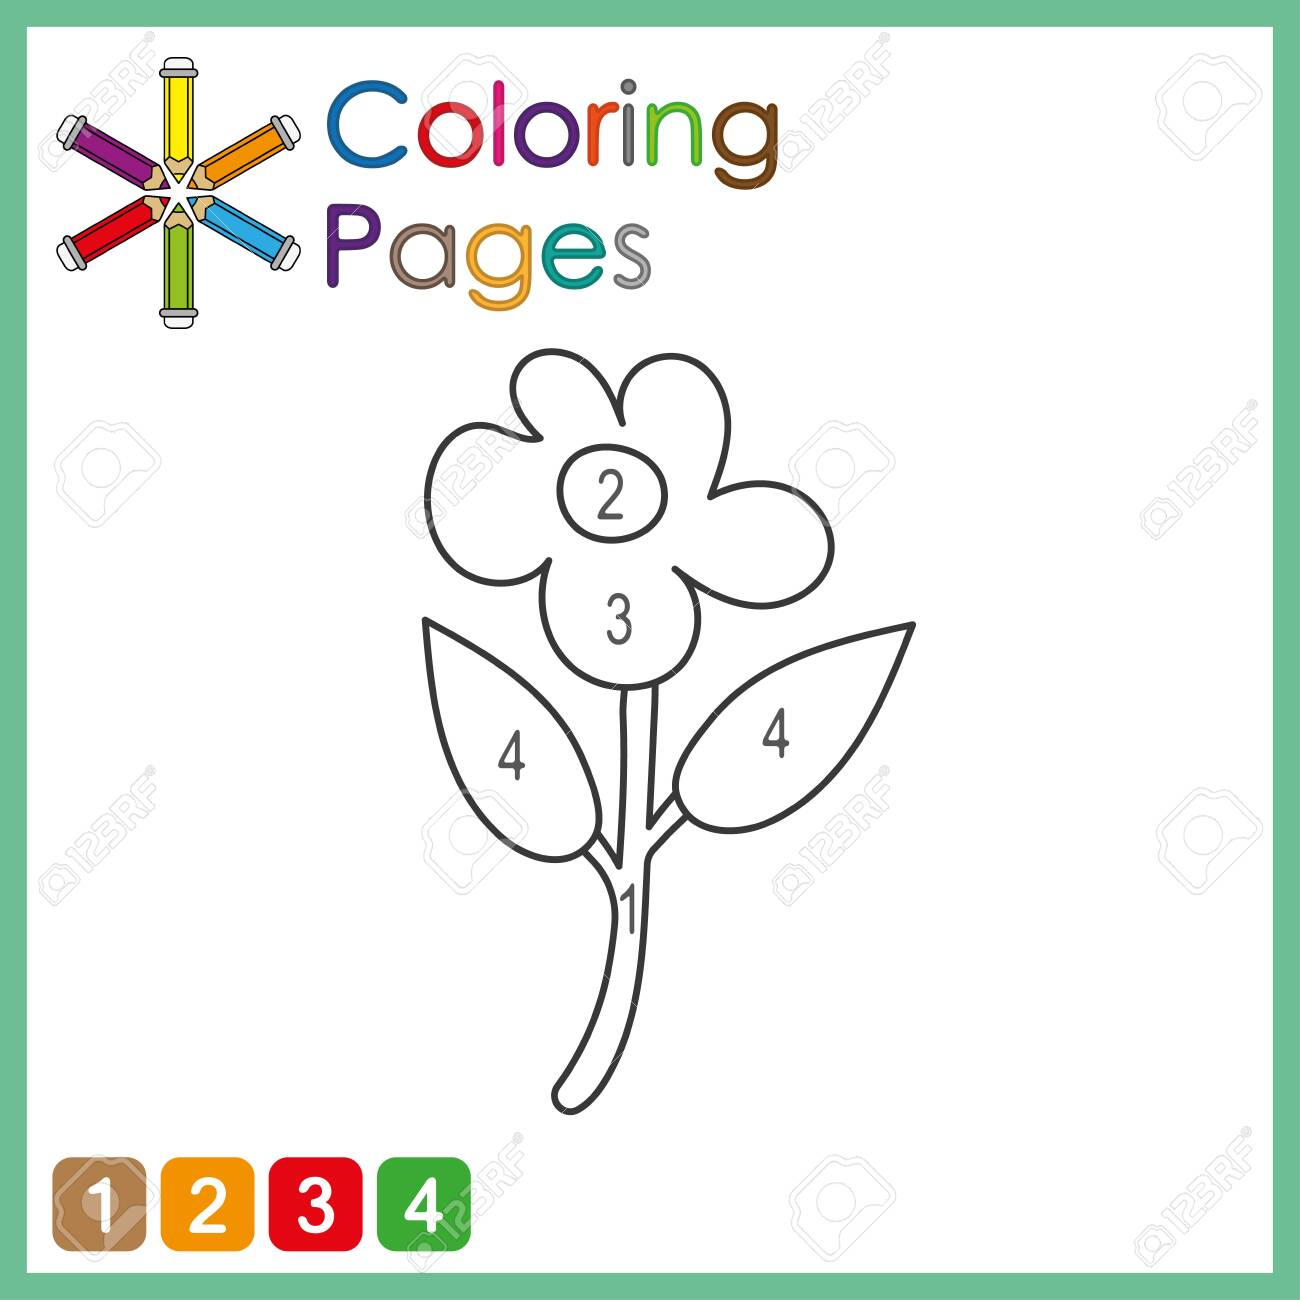 coloring page for kids, color the parts of the object according to numbers, color by numbers - 134278184